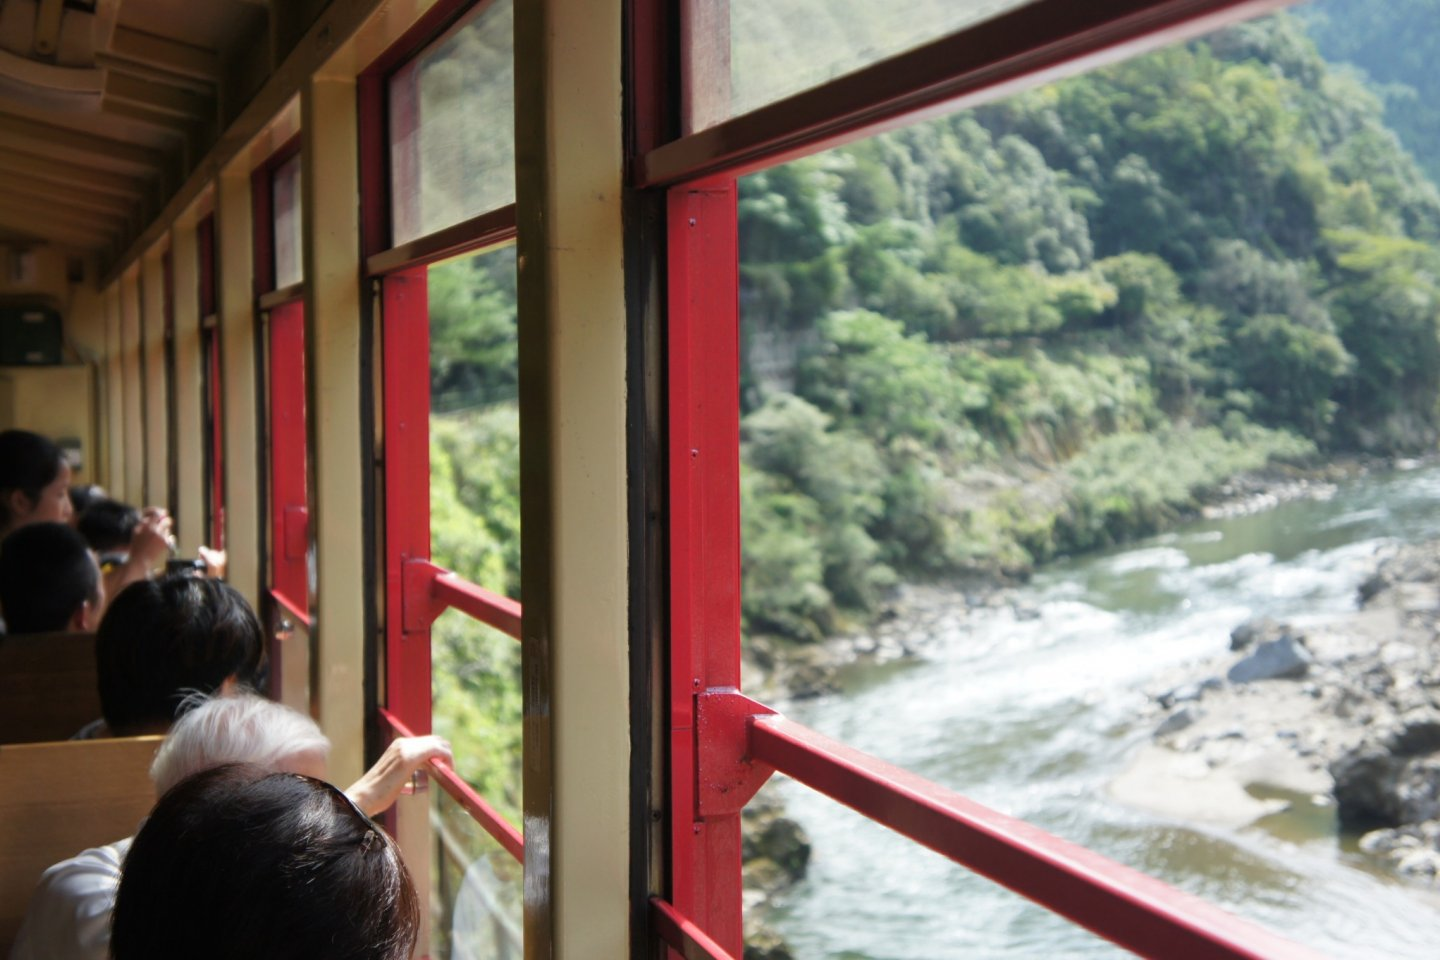 Mountains, valleys and rivers dominates the landscape of the Sagano Romantic Train trip